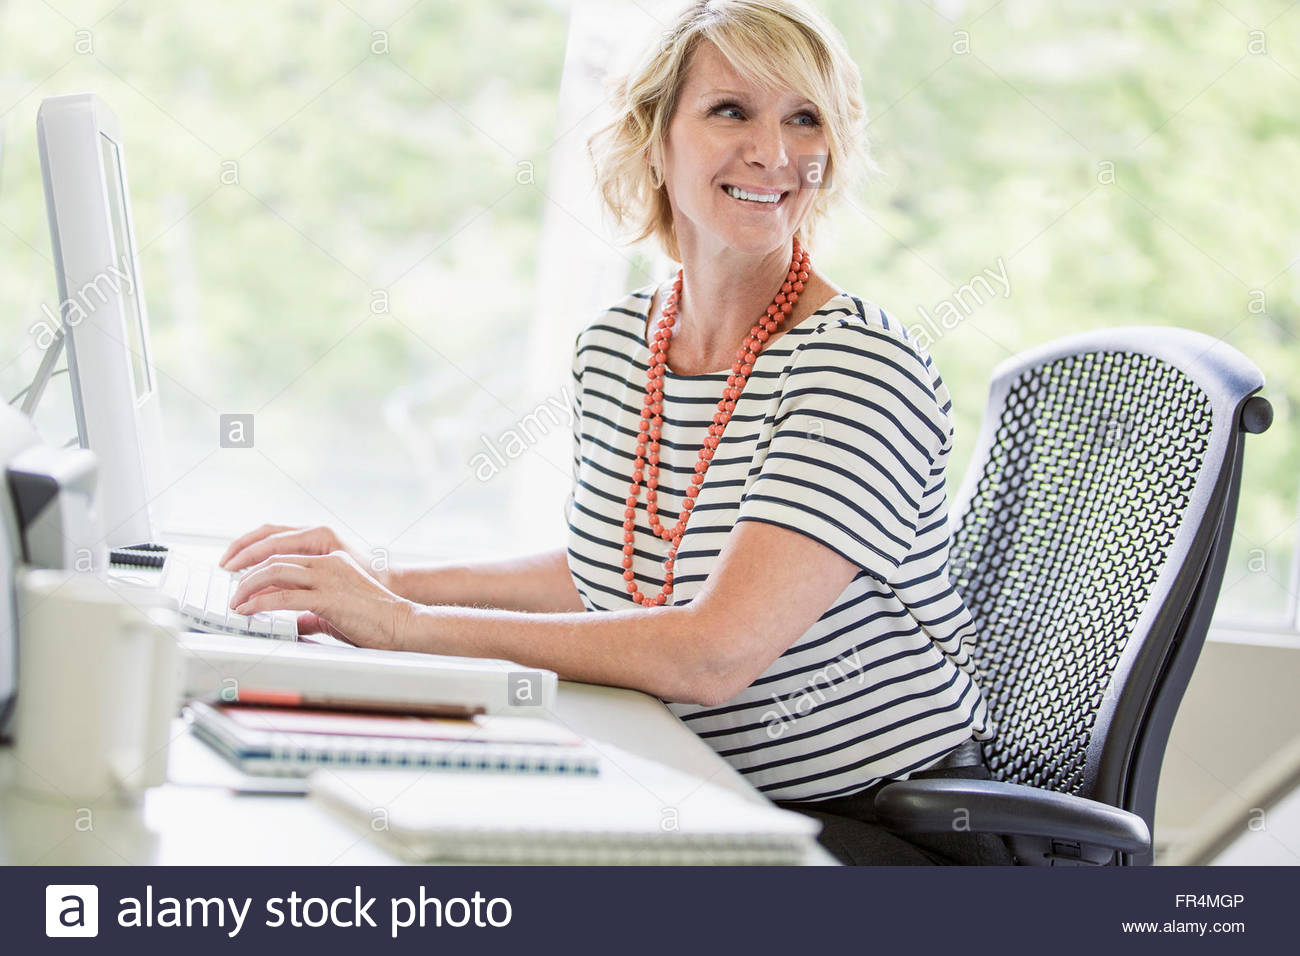 middle-aged businesswoman sitting at desktop computer - Stock Image